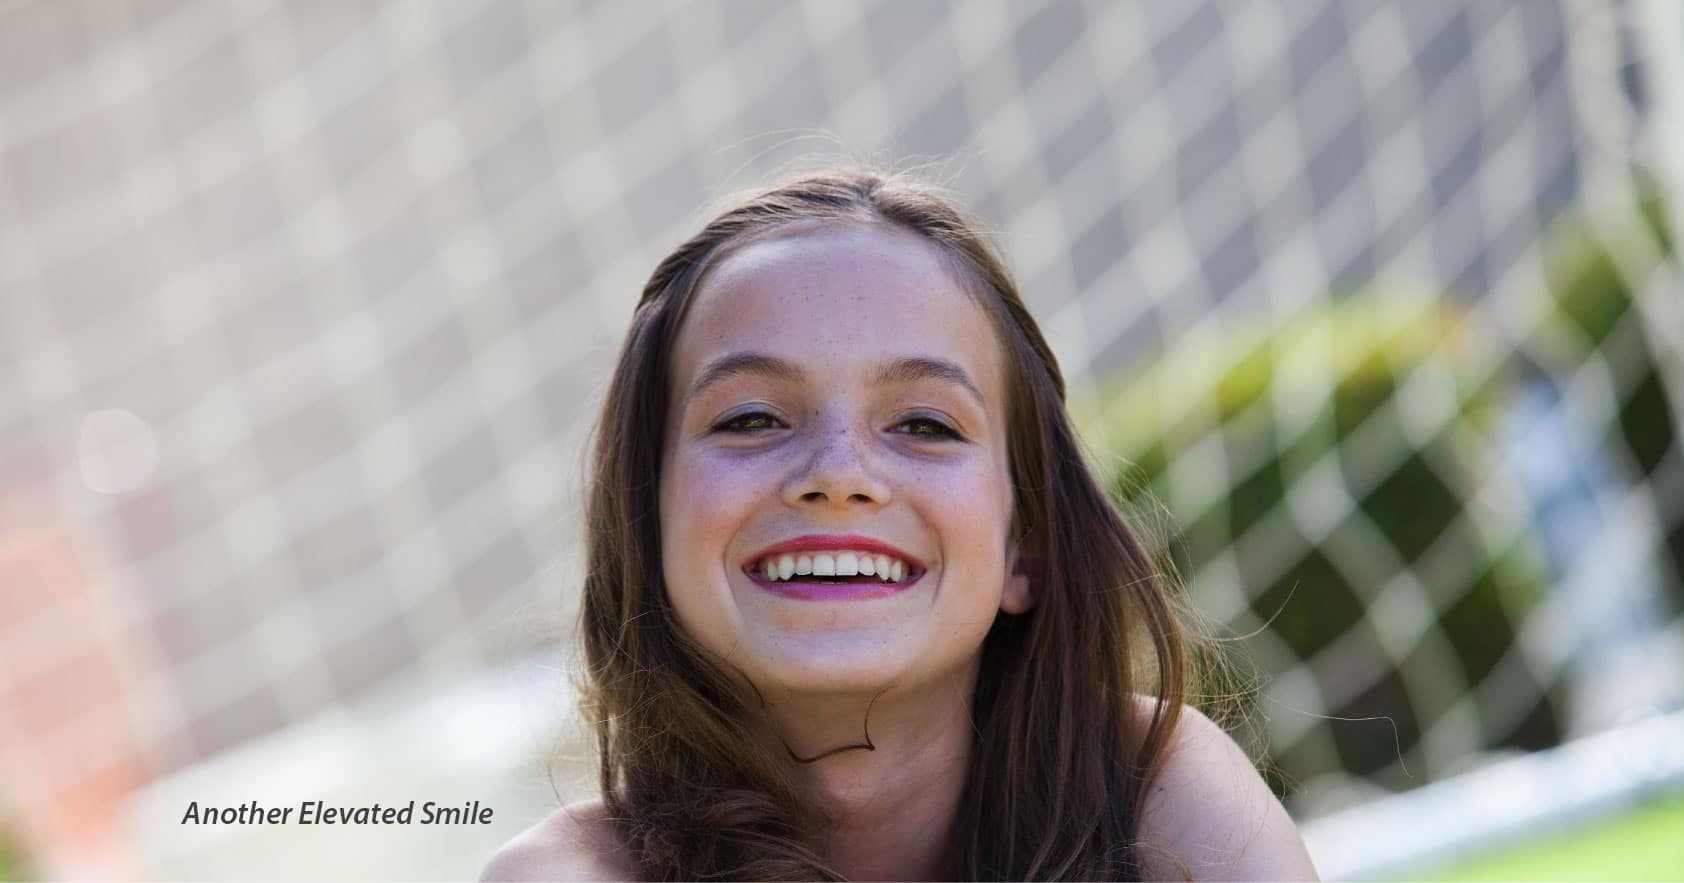 young girl smiling happily